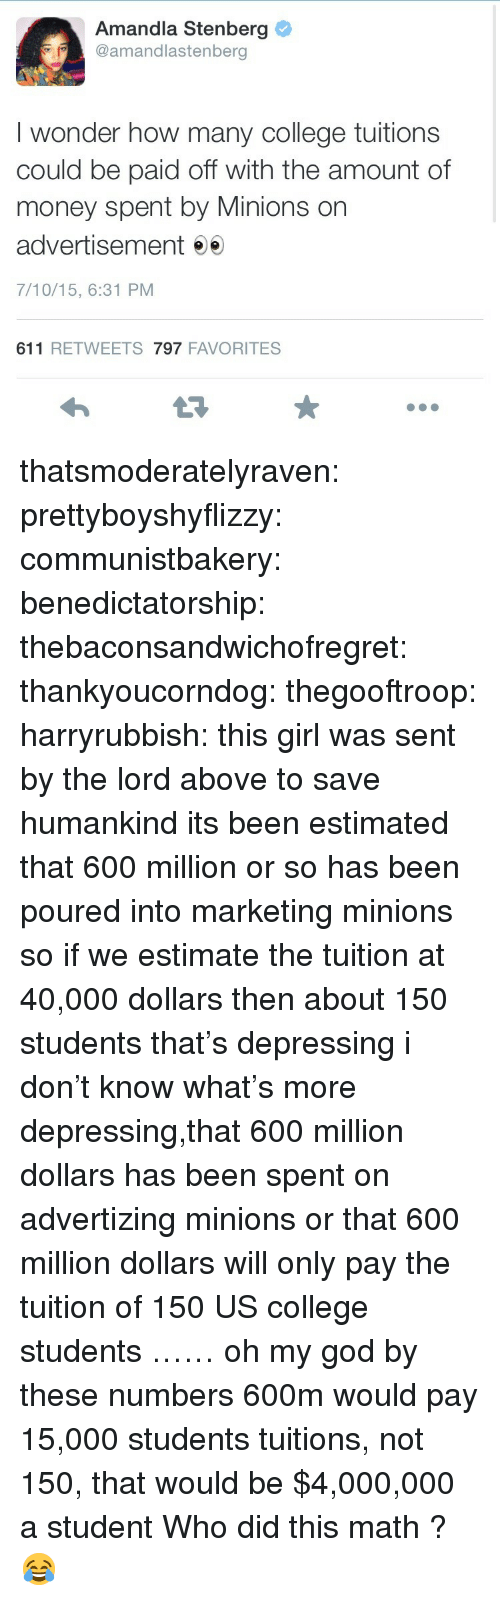 College, God, and Money: Amandla Stenberg  @amandlastenberg  I wonder how many college tuitions  could be paid off with the amount of  money spent by Minions on  advertisement e  7/10/15, 6:31 PM  611 RETWEETS 797 FAVORITES thatsmoderatelyraven: prettyboyshyflizzy:   communistbakery:   benedictatorship:  thebaconsandwichofregret:   thankyoucorndog:   thegooftroop:   harryrubbish:  this girl was sent by the lord above to save humankind  its been estimated that 600 million or so has been poured into marketing minions so if we estimate the tuition at 40,000 dollars then about 150 students   that's depressing   i don't know what's more depressing,that 600 million dollars has been spent on advertizing minions or that 600 million dollars will only pay the tuition of 150 US college students   …… oh my god  by these numbers 600m would pay 15,000 students tuitions, not 150, that would be $4,000,000 a student   Who did this math ? 😂